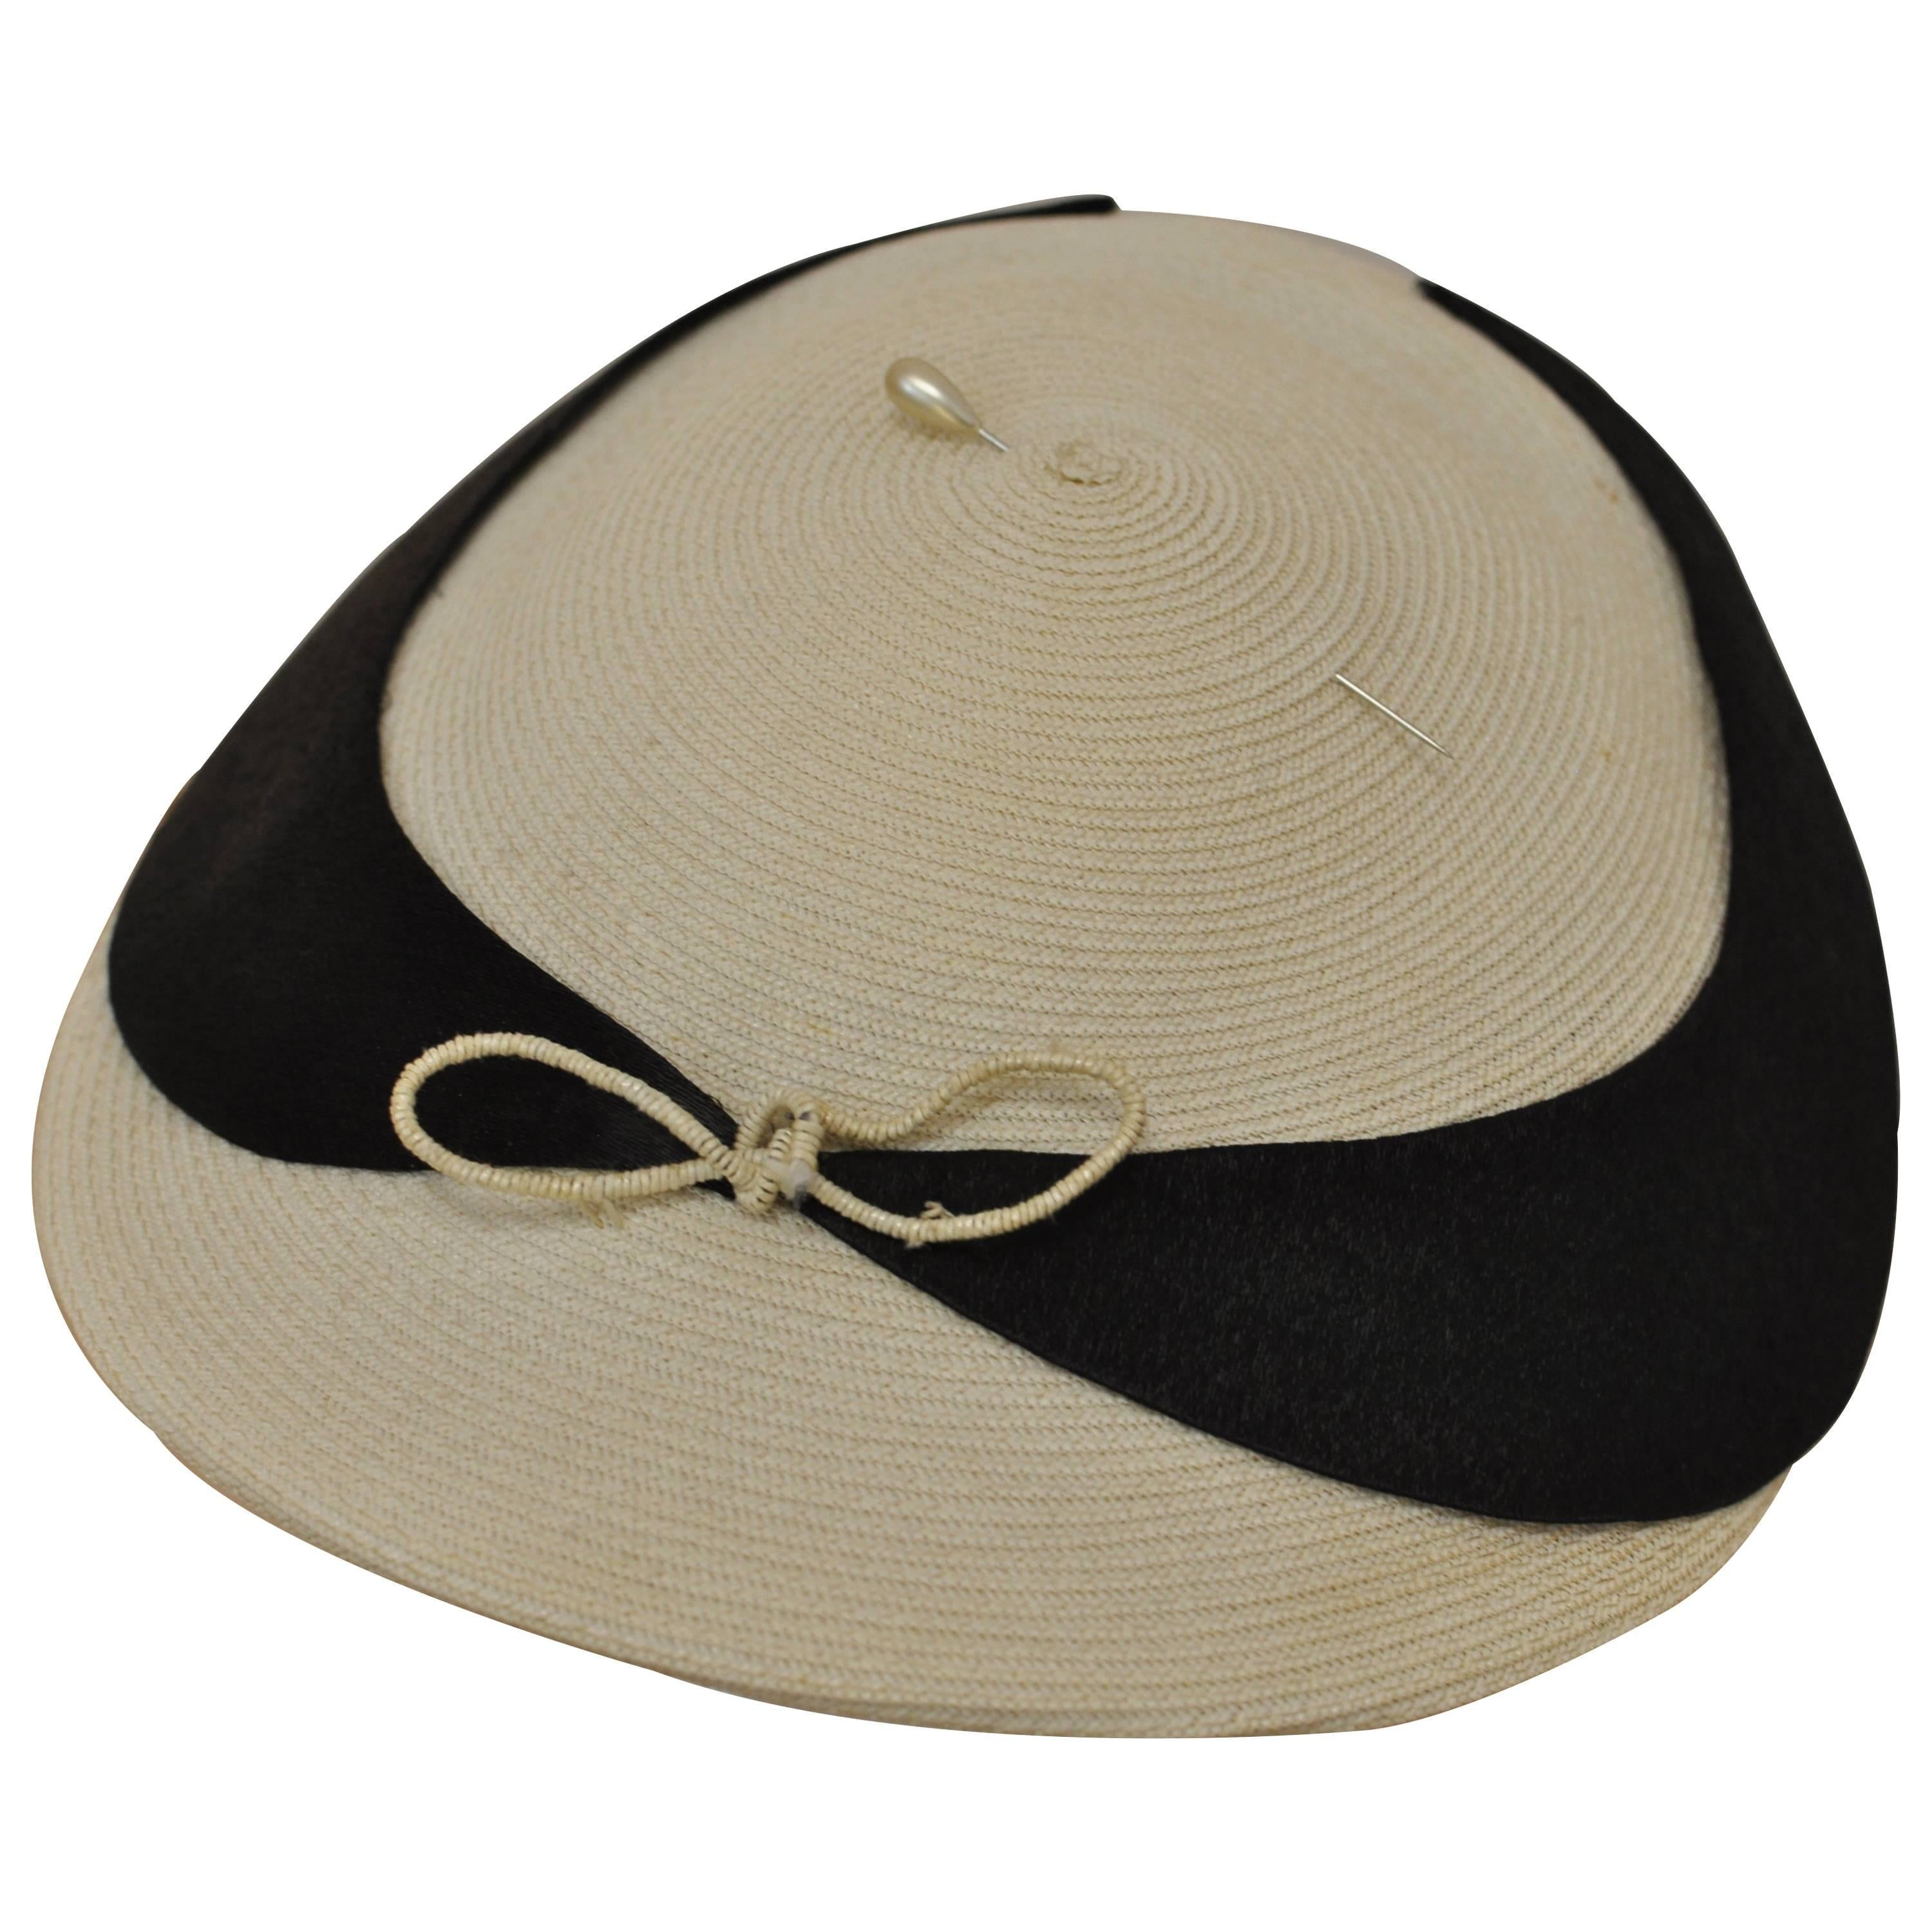 1940s Ivory and Black Straw Hat with Pearl Pin at 1stdibs cf3db753ed0b